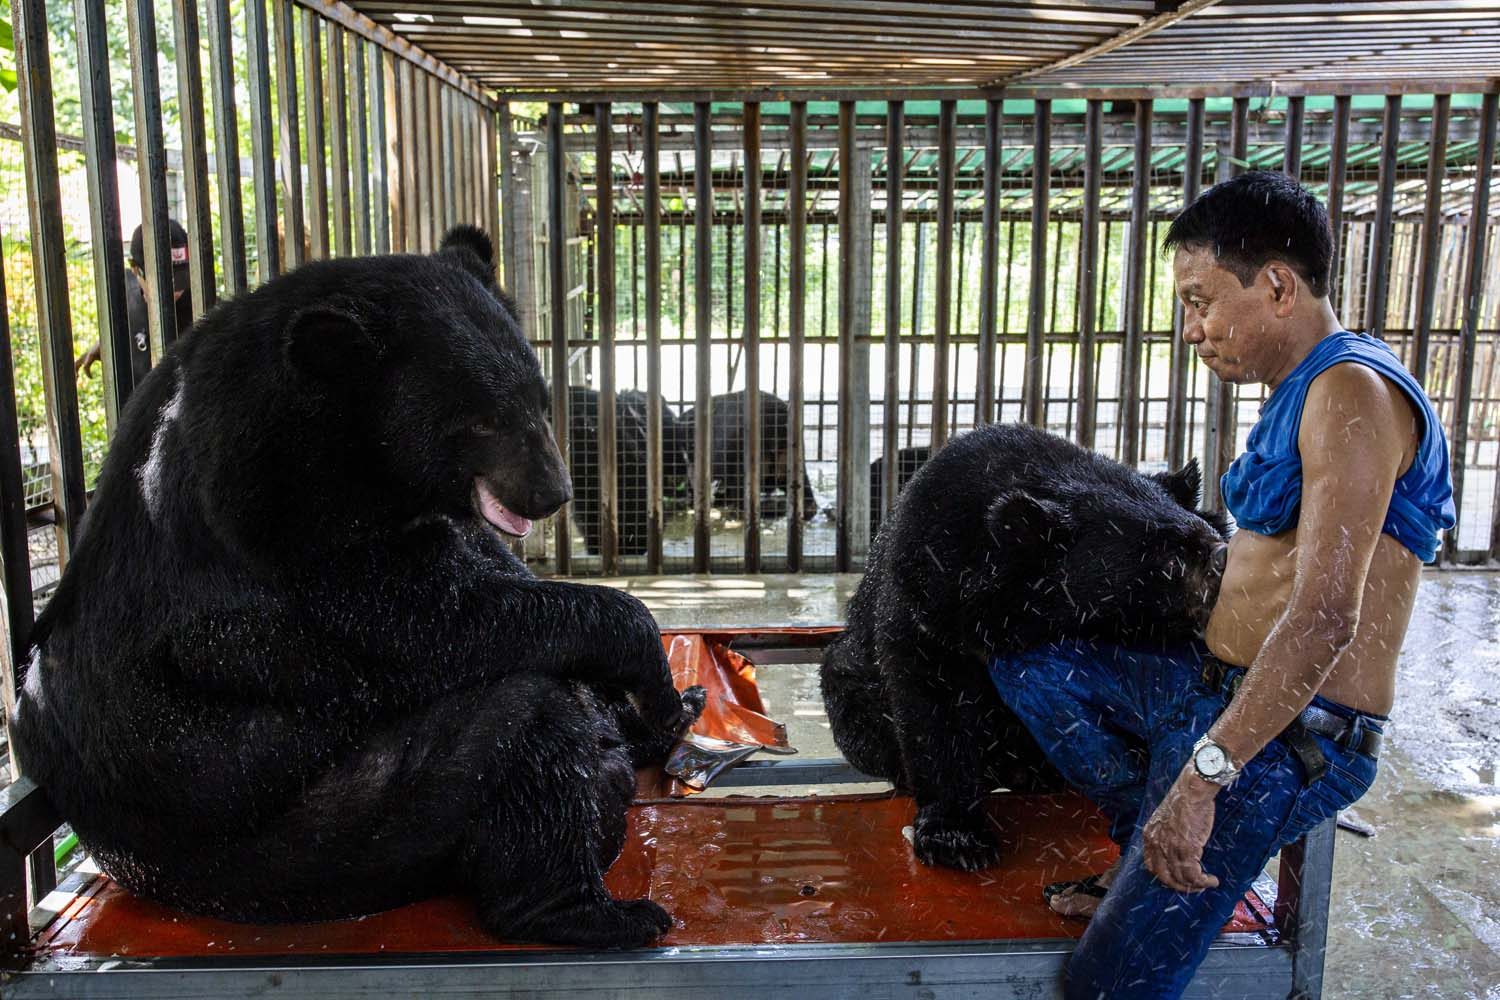 Ko Aung with his Asiatic black bears in Taungoo, Bago Region, on June 30. (Hkun Lat | Frontier)